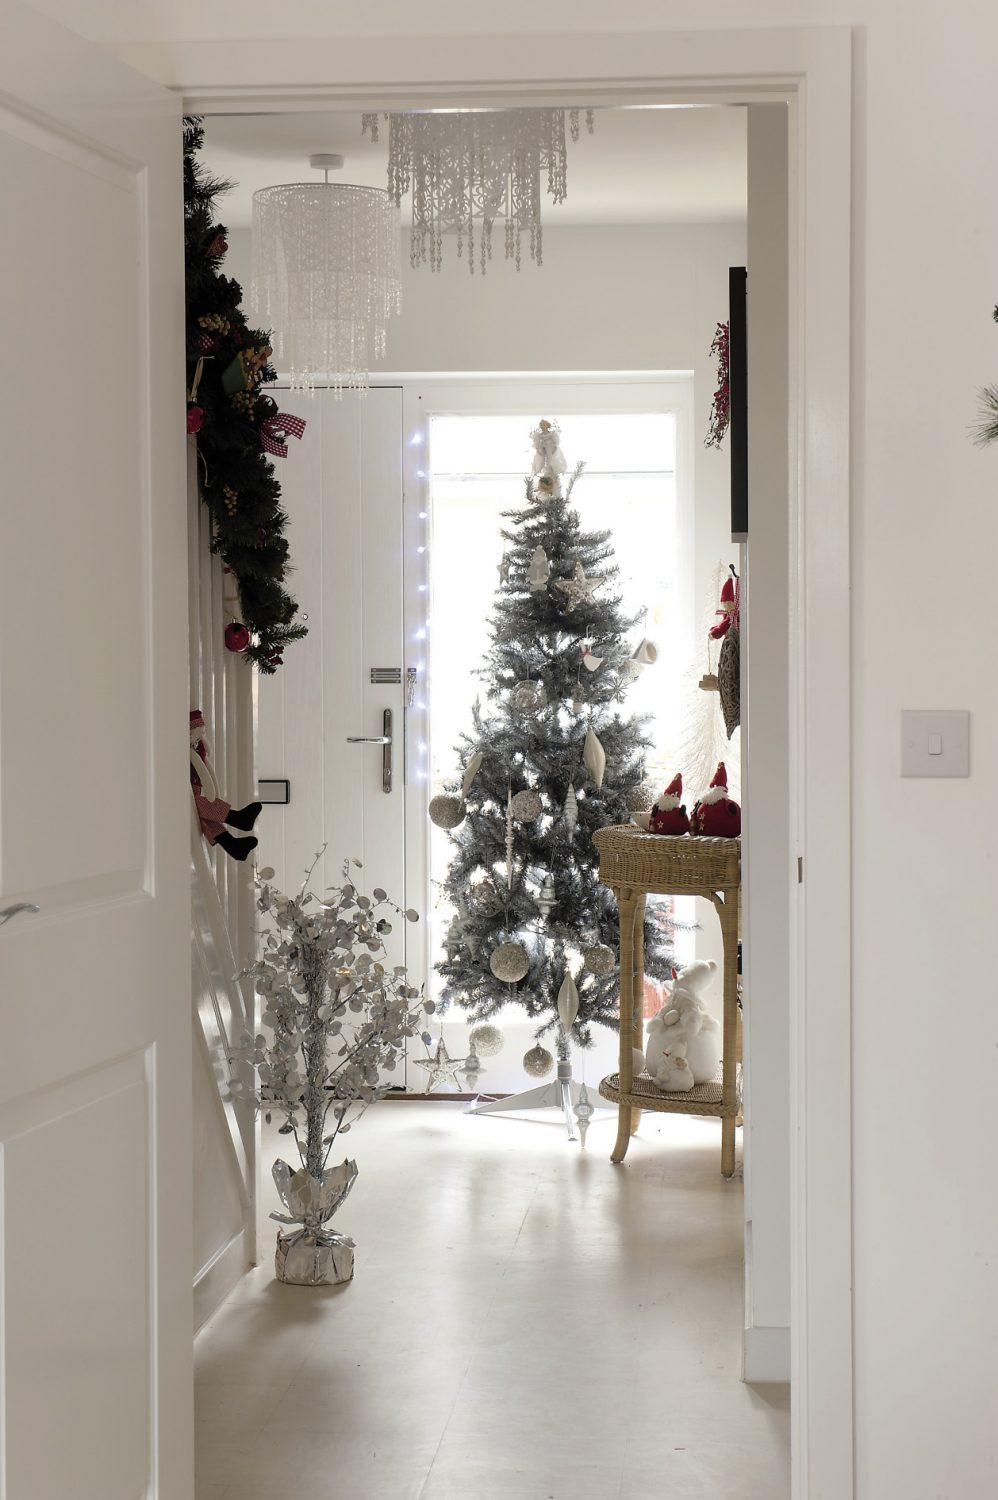 There's Christmas cheer aplenty in the hallway